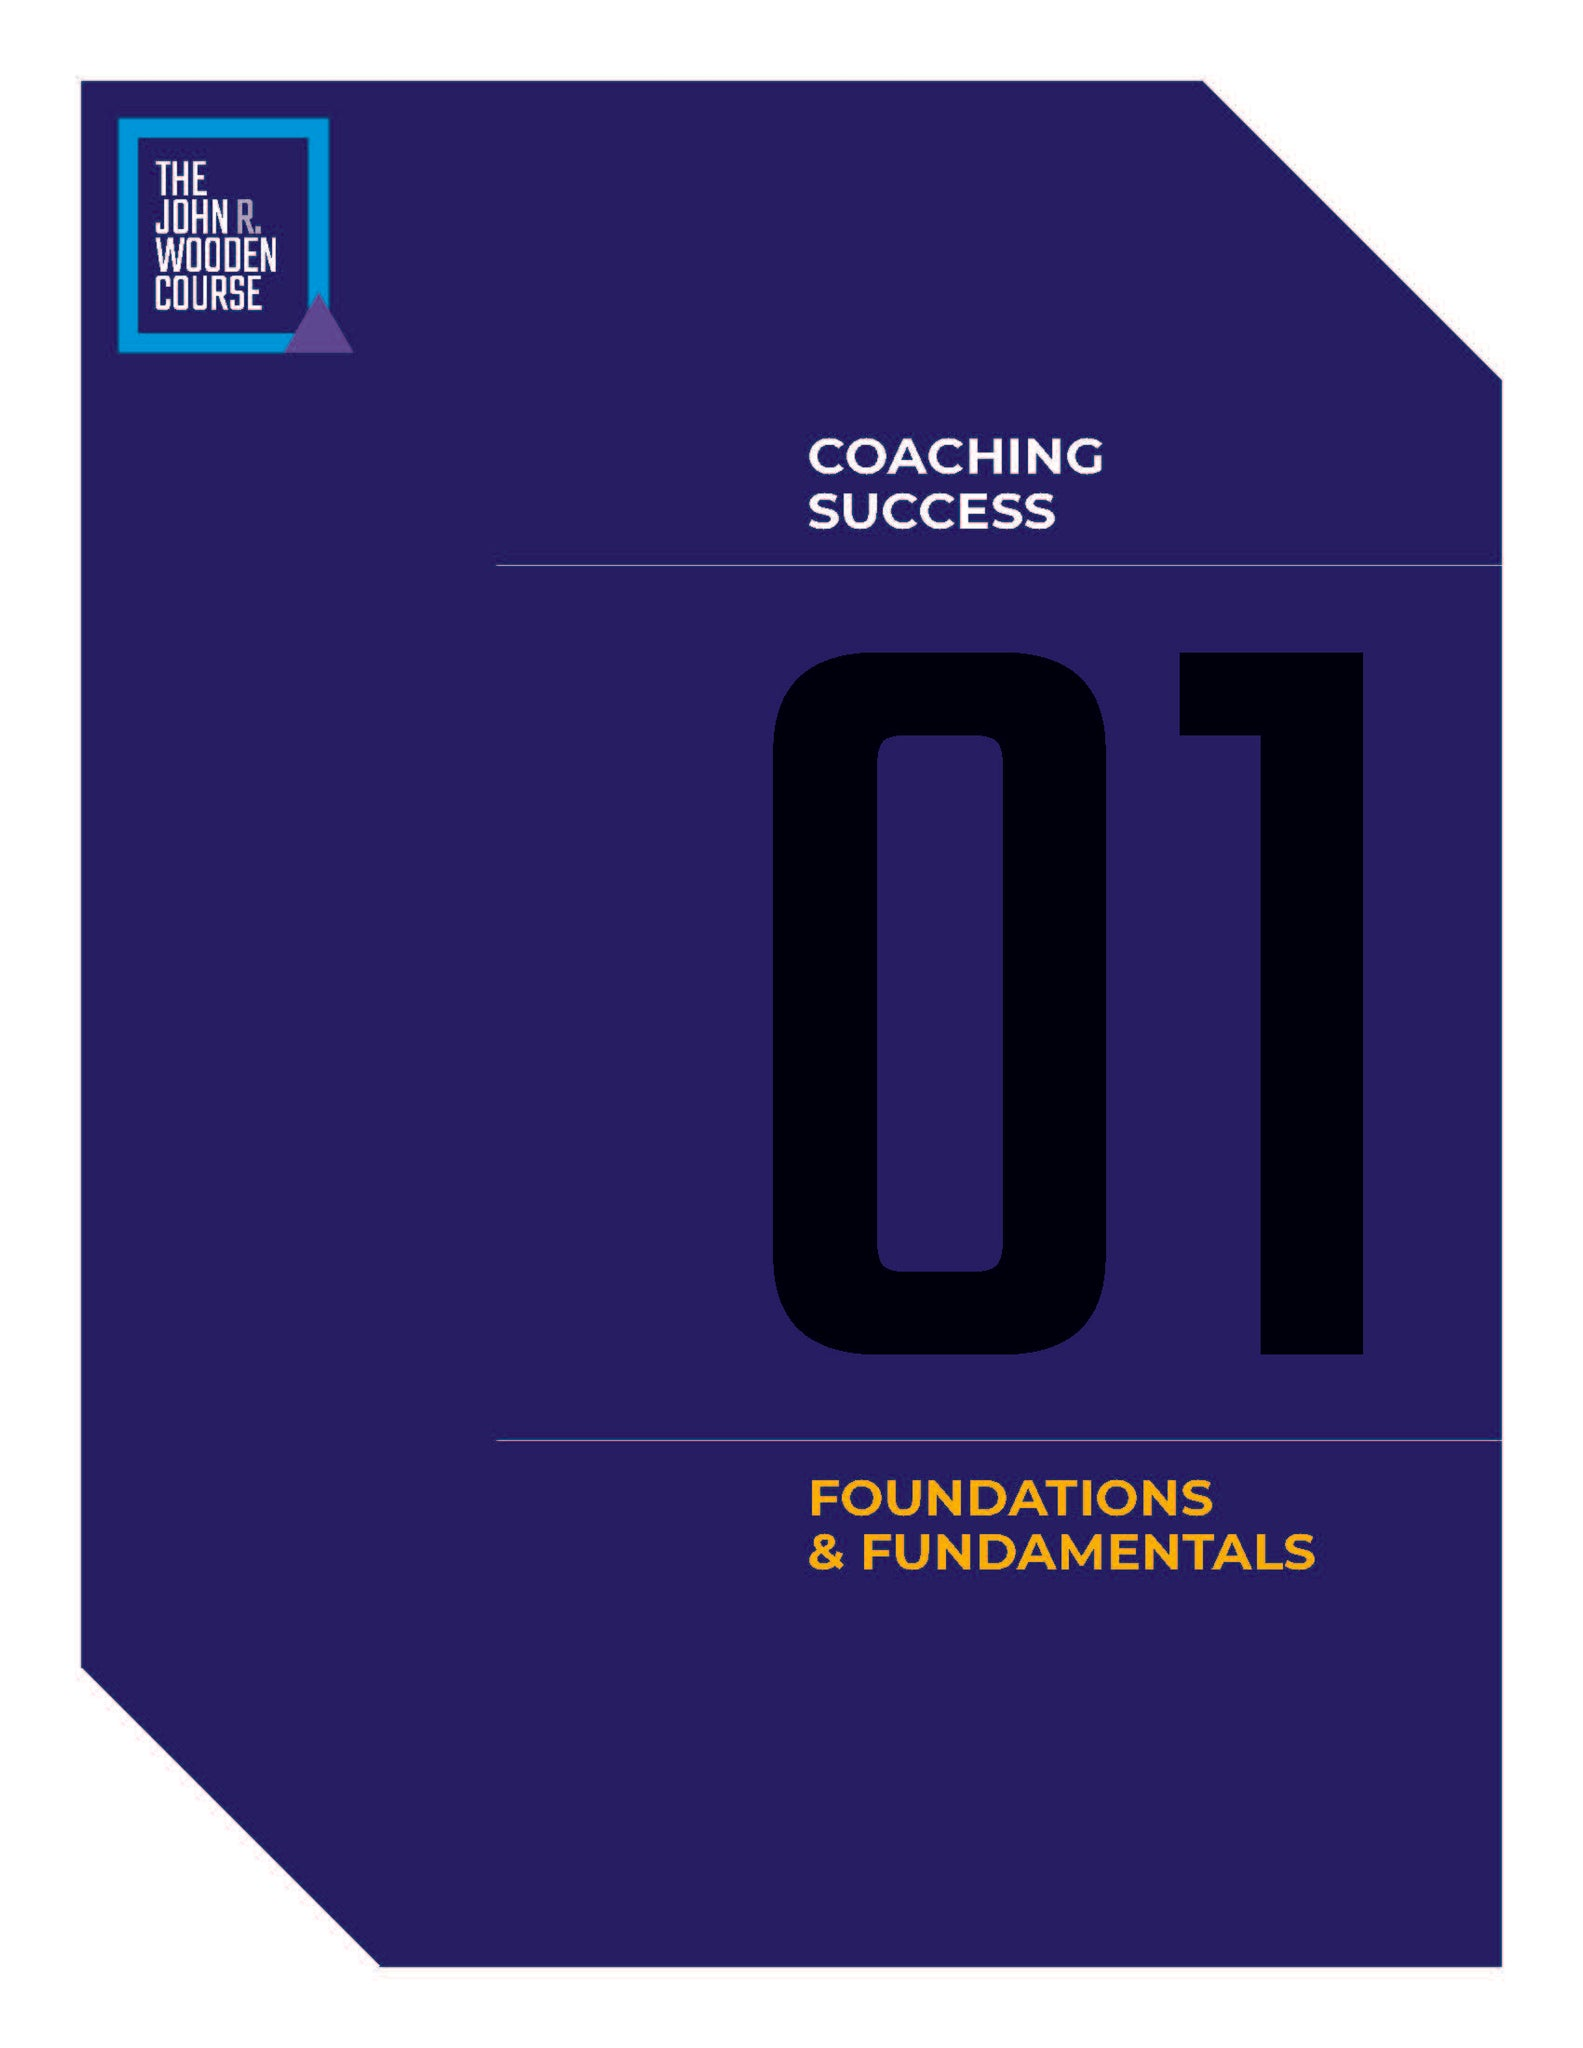 John Wooden's Coaching Course - Foundations and Fundamentals